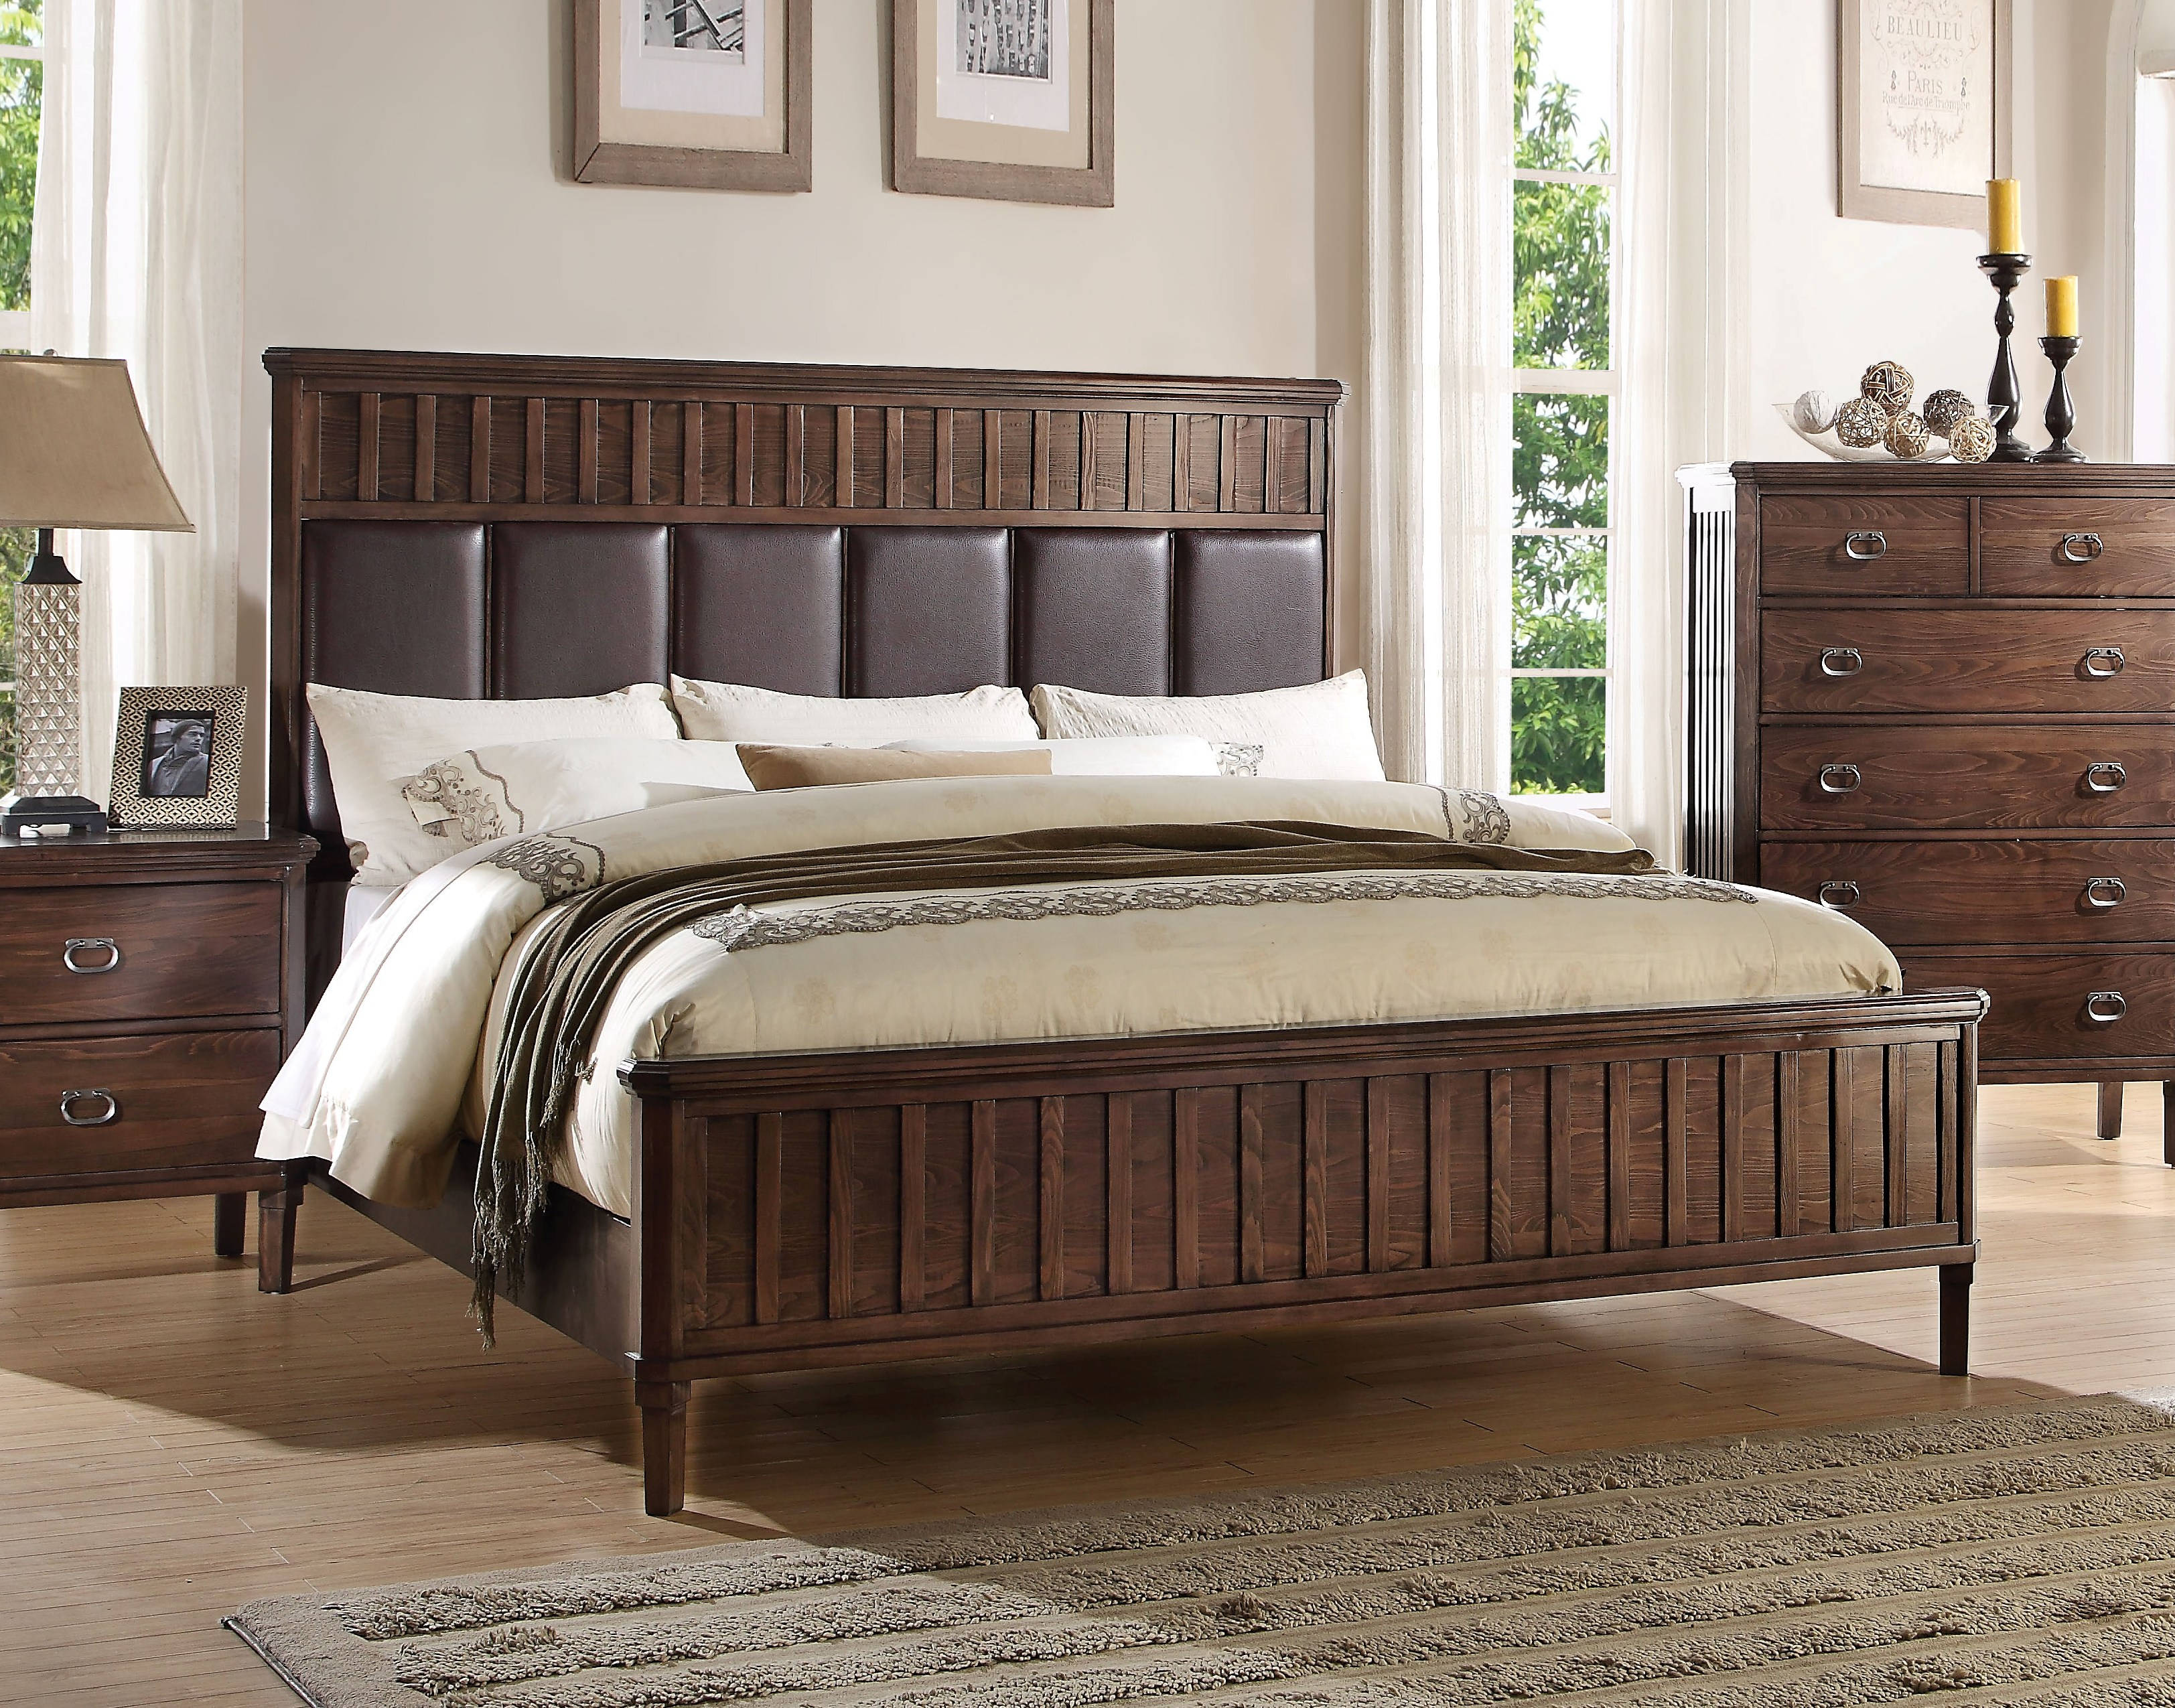 Acme furniture mazen valle master bedroom set the classy home No dresser in master bedroom